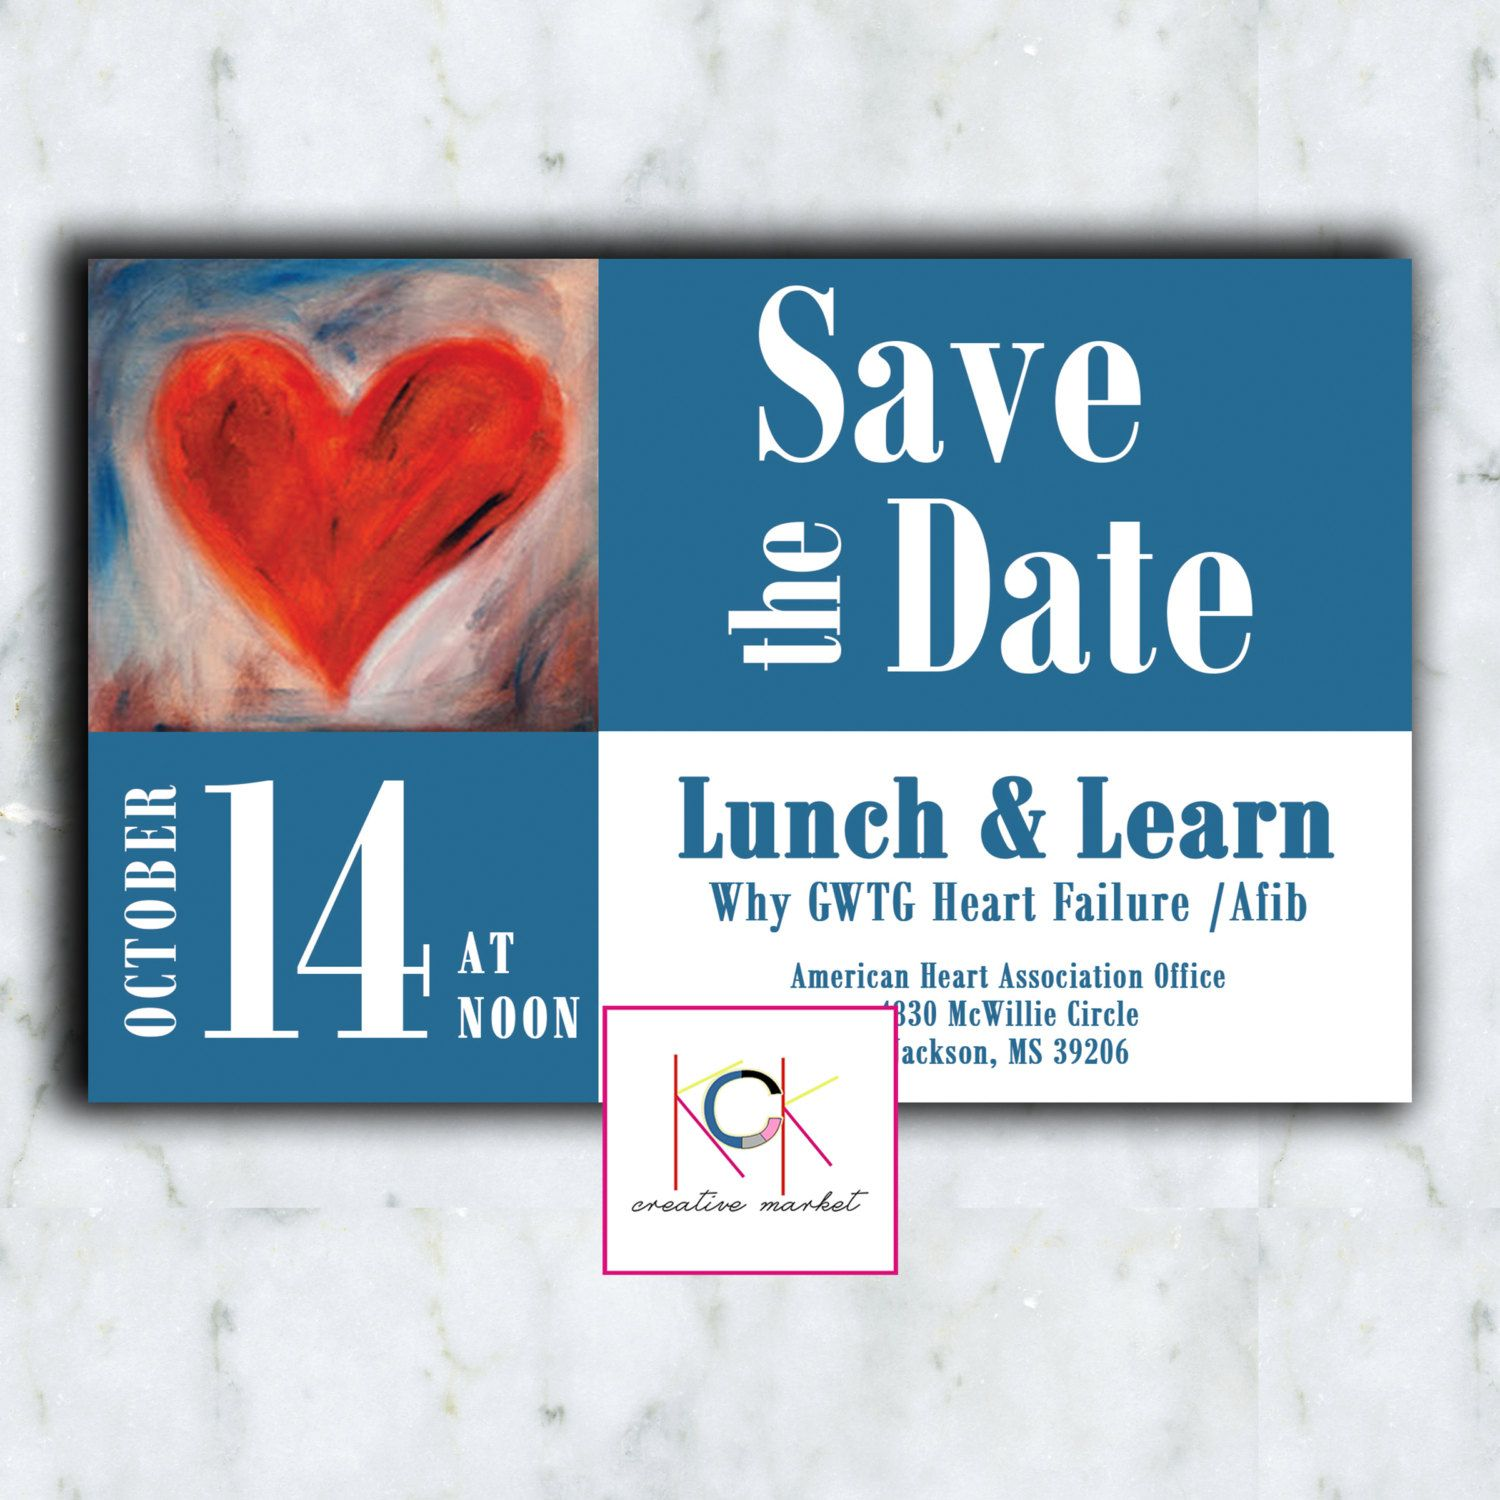 Custom Save The Date Card Meeting Reception Lunch And Learn Shower Invitation Business Meeting Diy Prints Save The Date Cards 90th Birthday Party Theme Save the date conference template